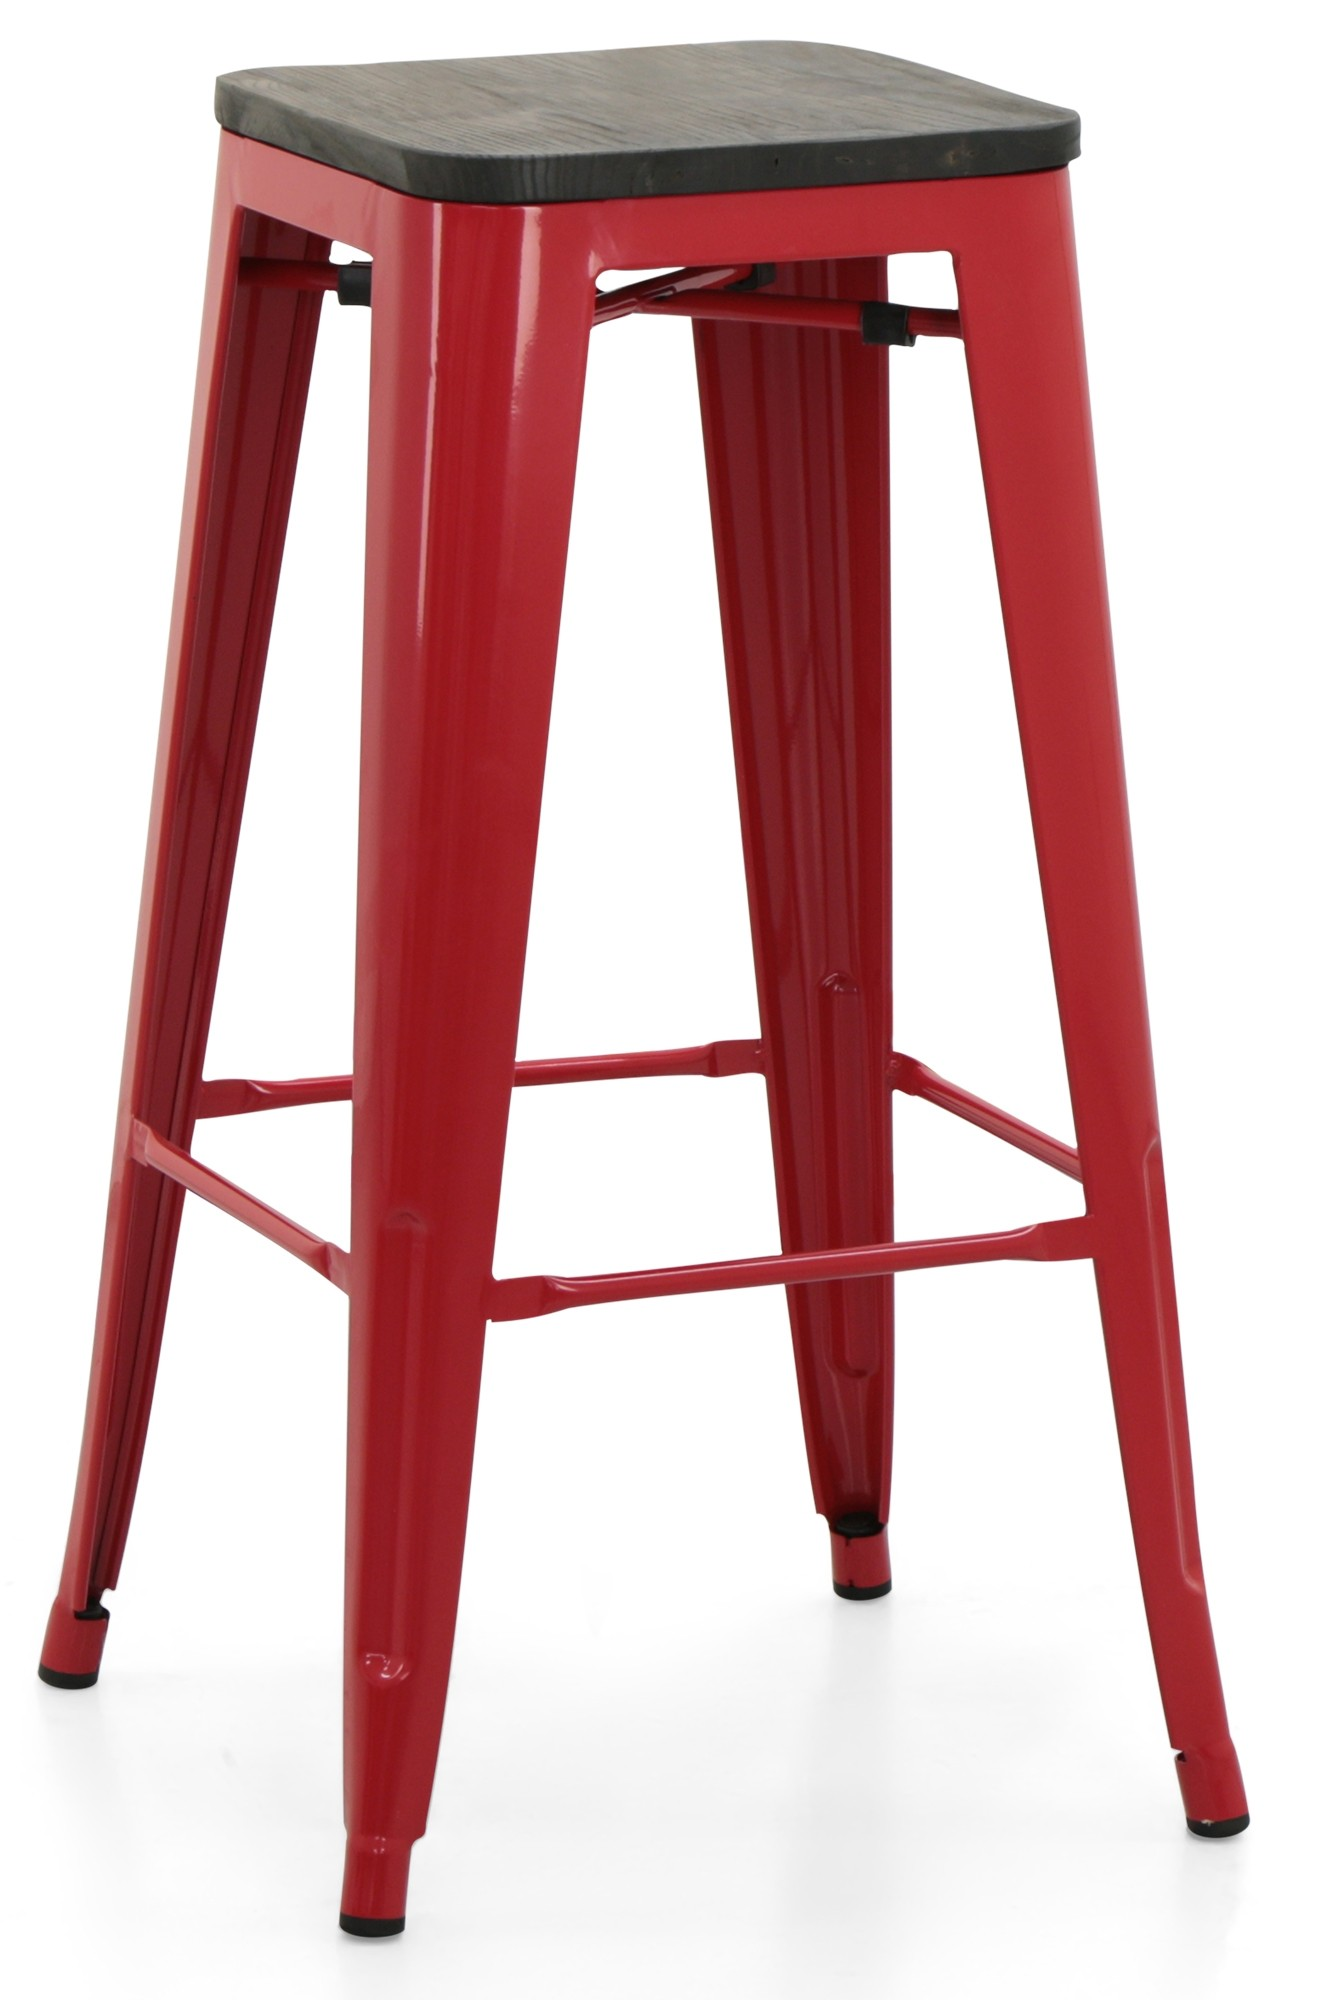 Living Room Stools Uk Retro Metal Bar Stool With Wooden Seat Red Bar Stools